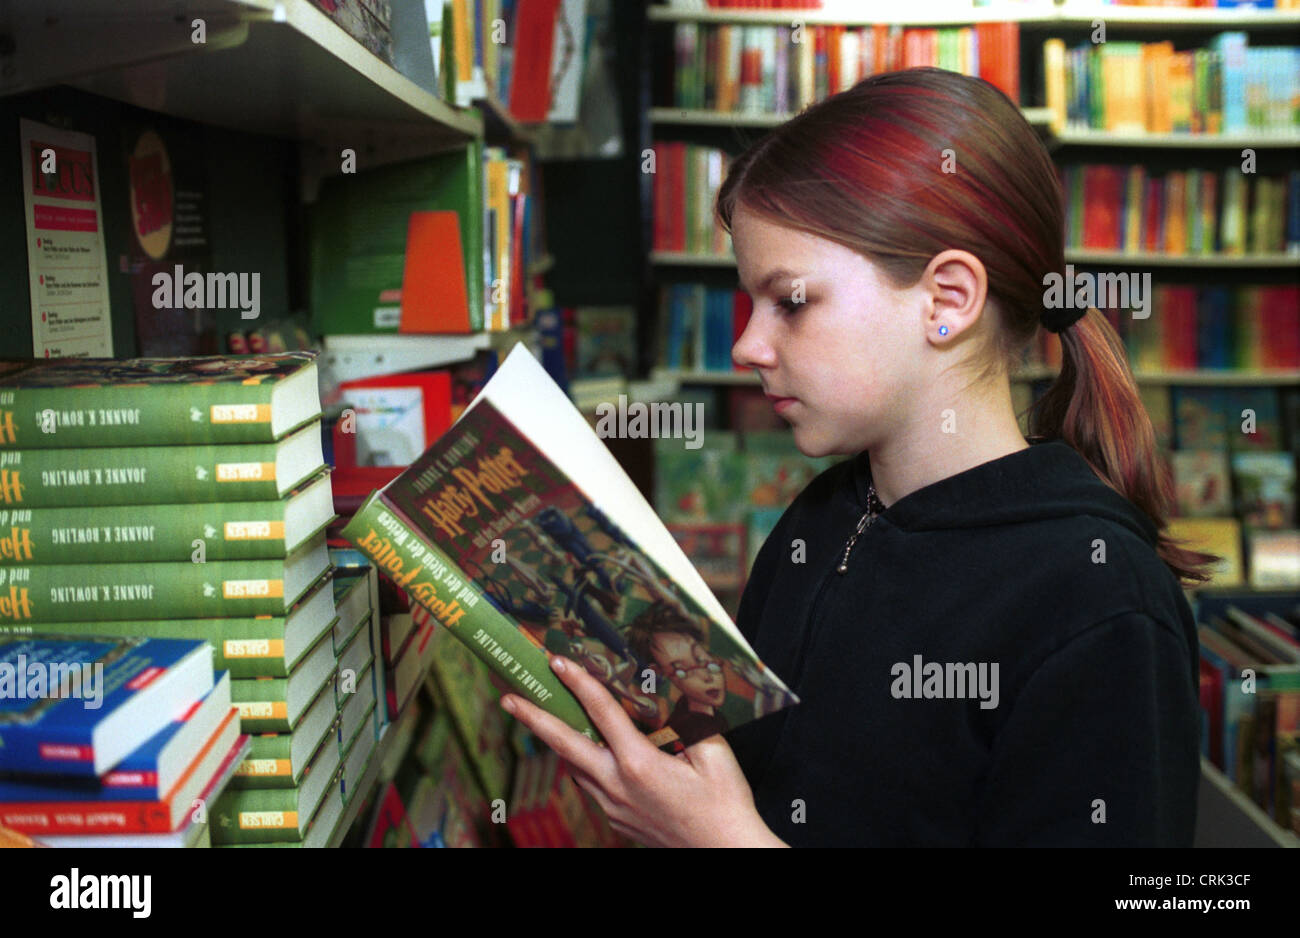 reading-girl-in-a-bookstore-CRK3CF.jpg